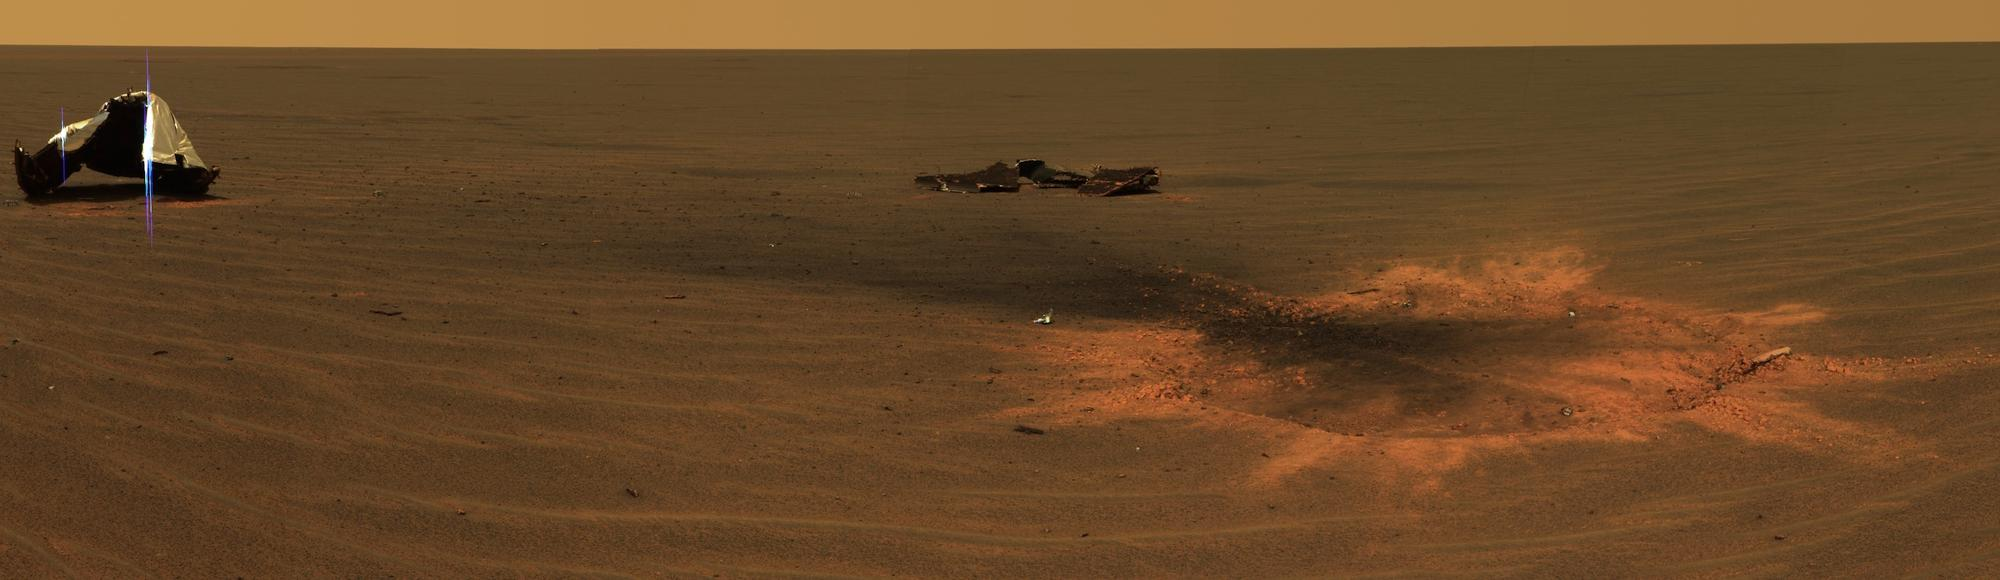 a mars mission that saves the human race eh not worth it vice news eh not worth it